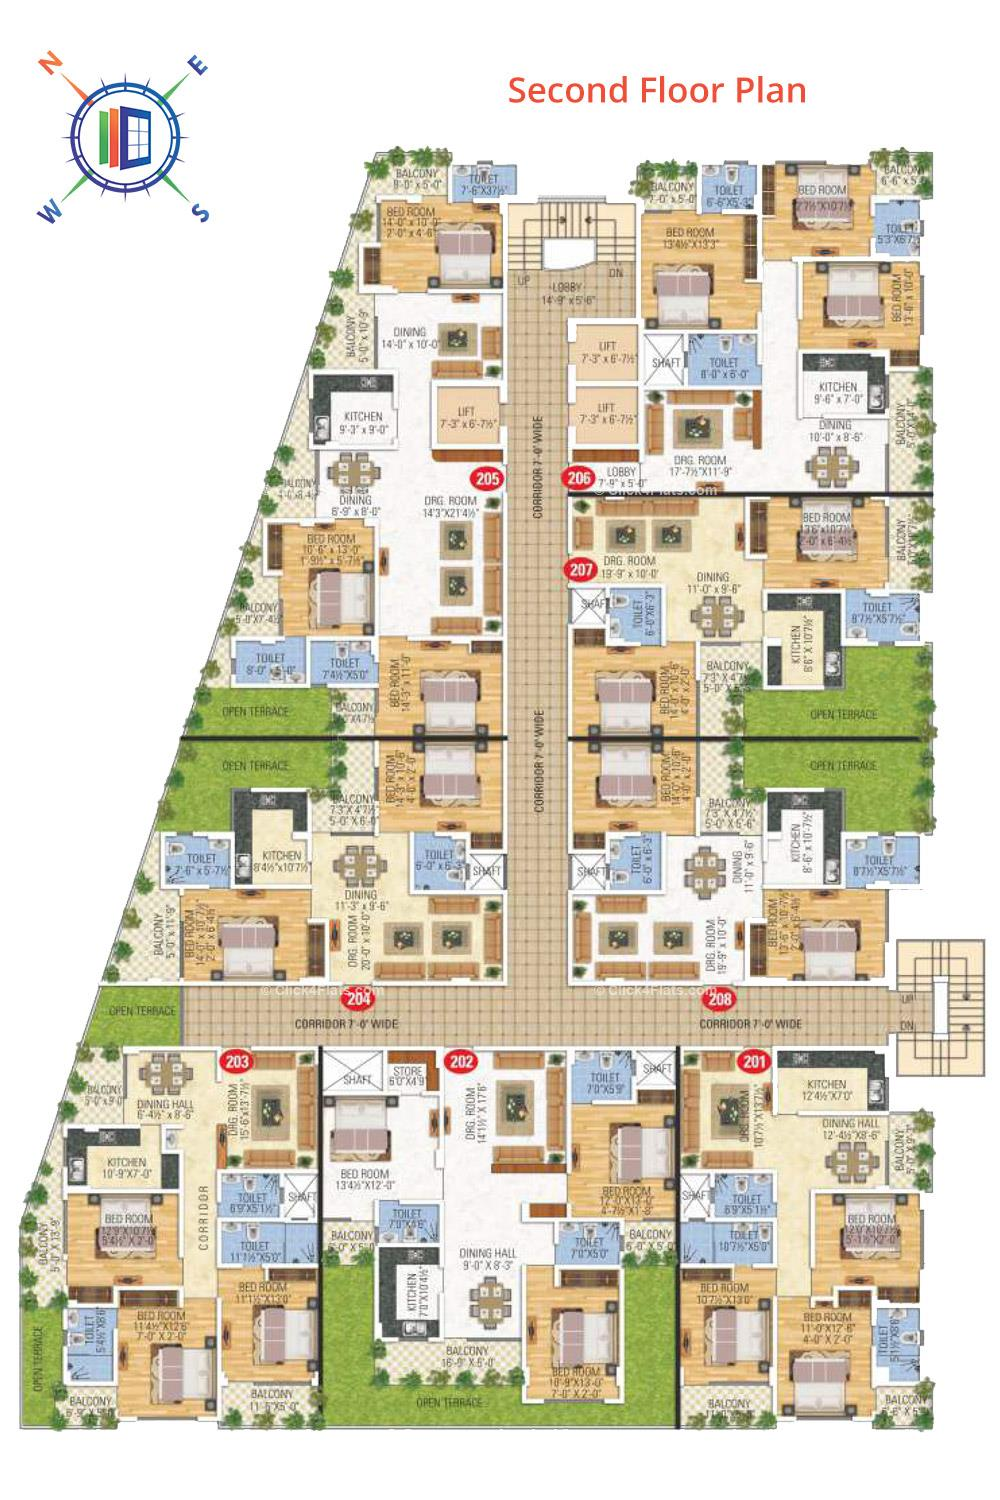 Anand Prime Second Floor Plan